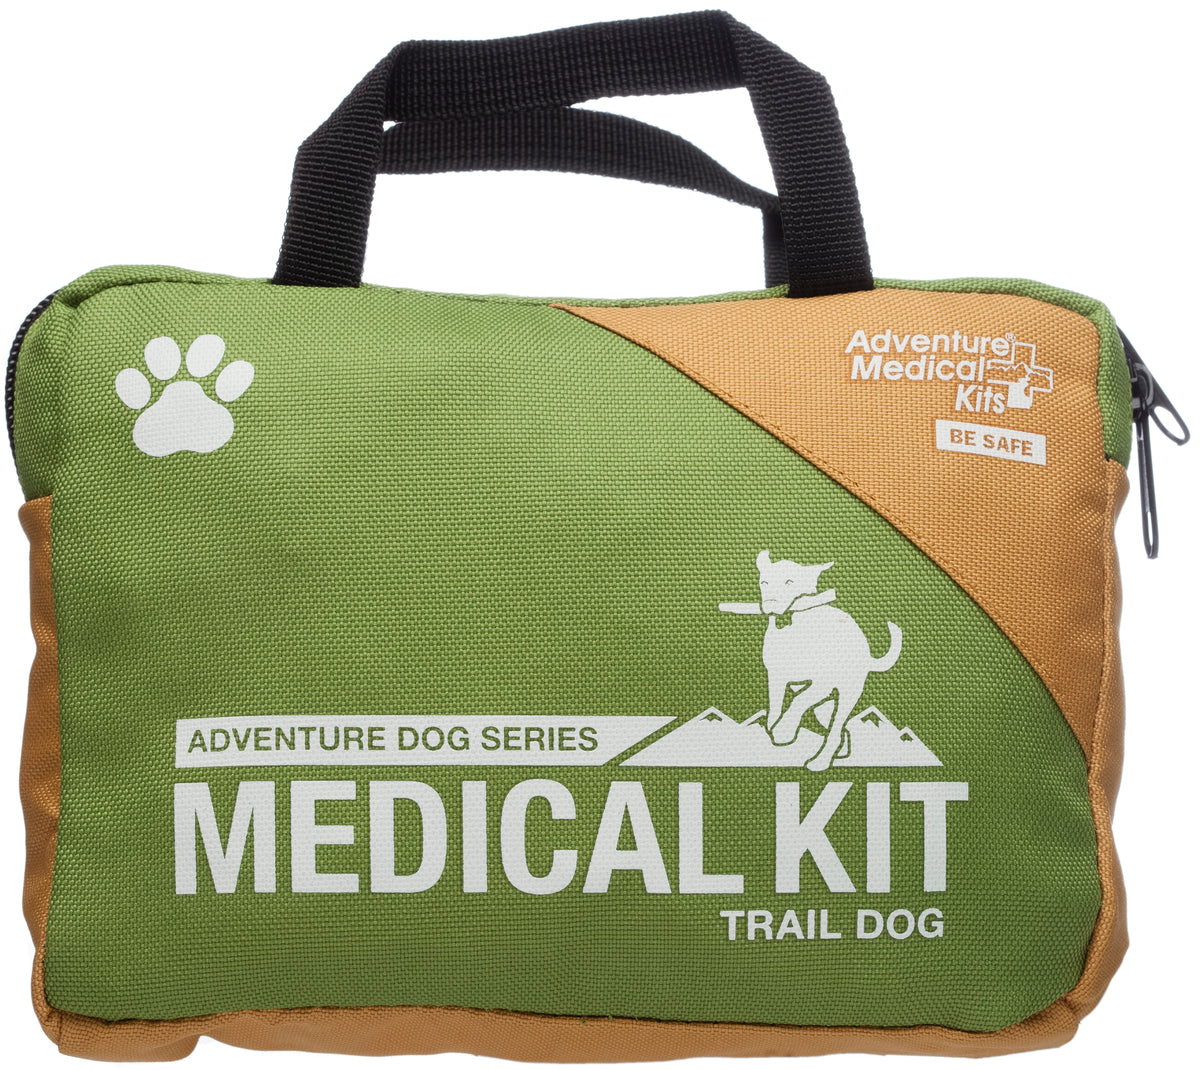 AMK Adventure Dog Trail Dog